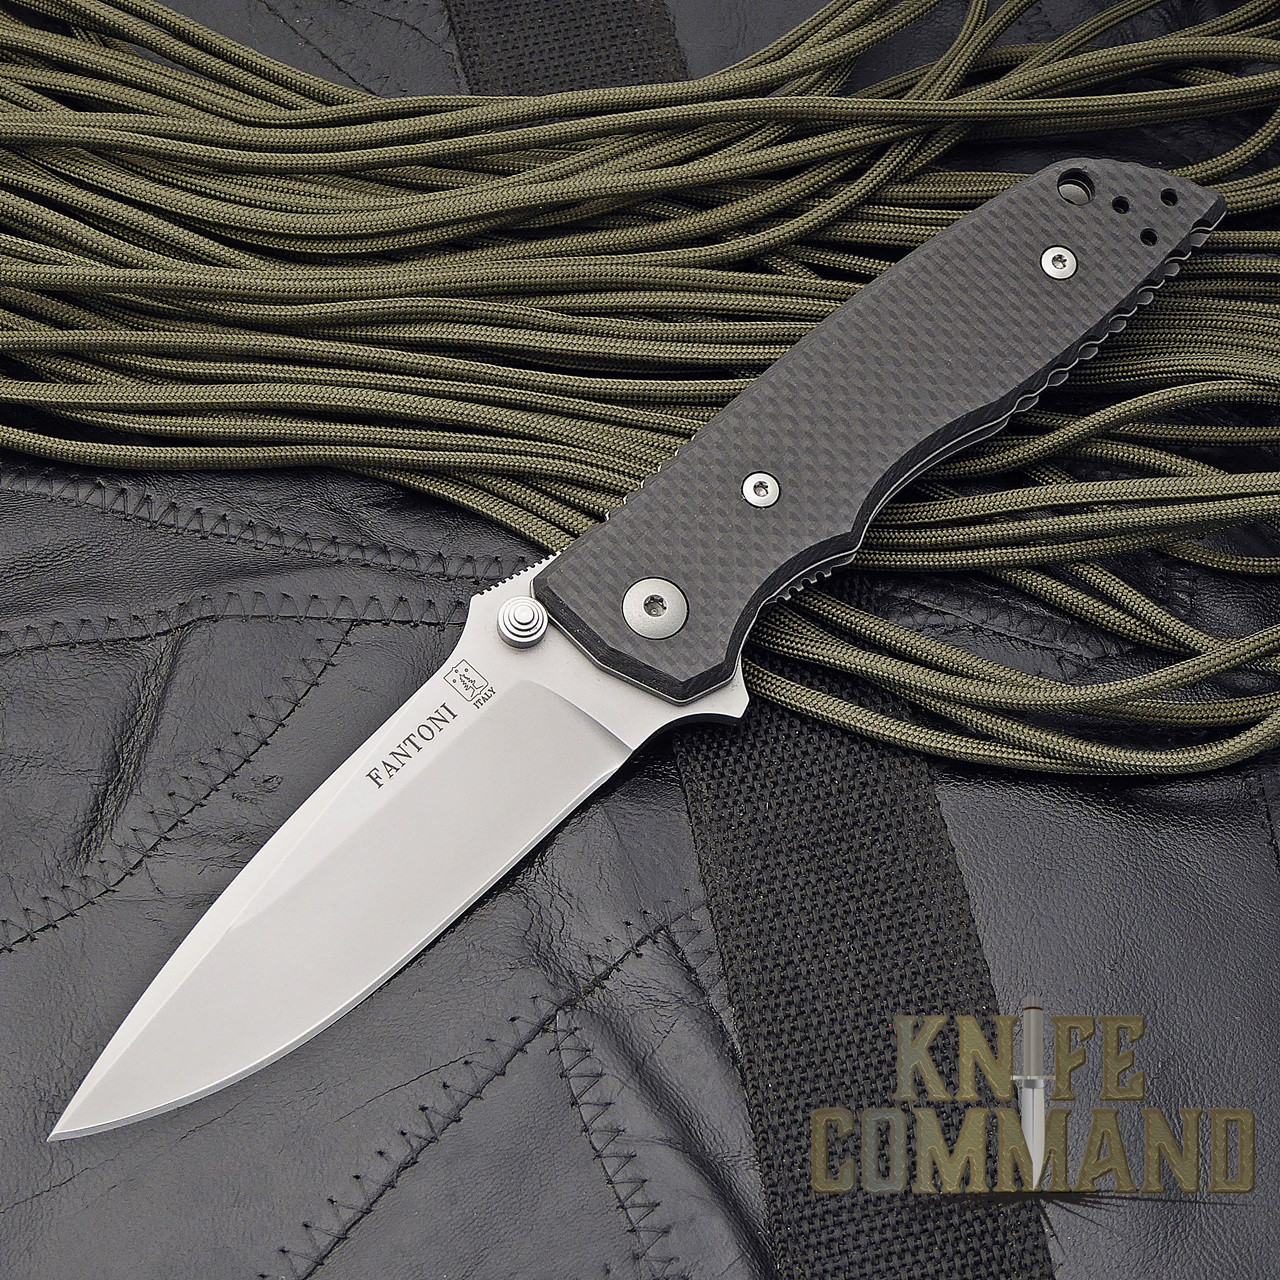 Fantoni HB 01 William Harsey Carbon Fiber Combat Folder Tactical Knife.  Carbon Fiber Edition.